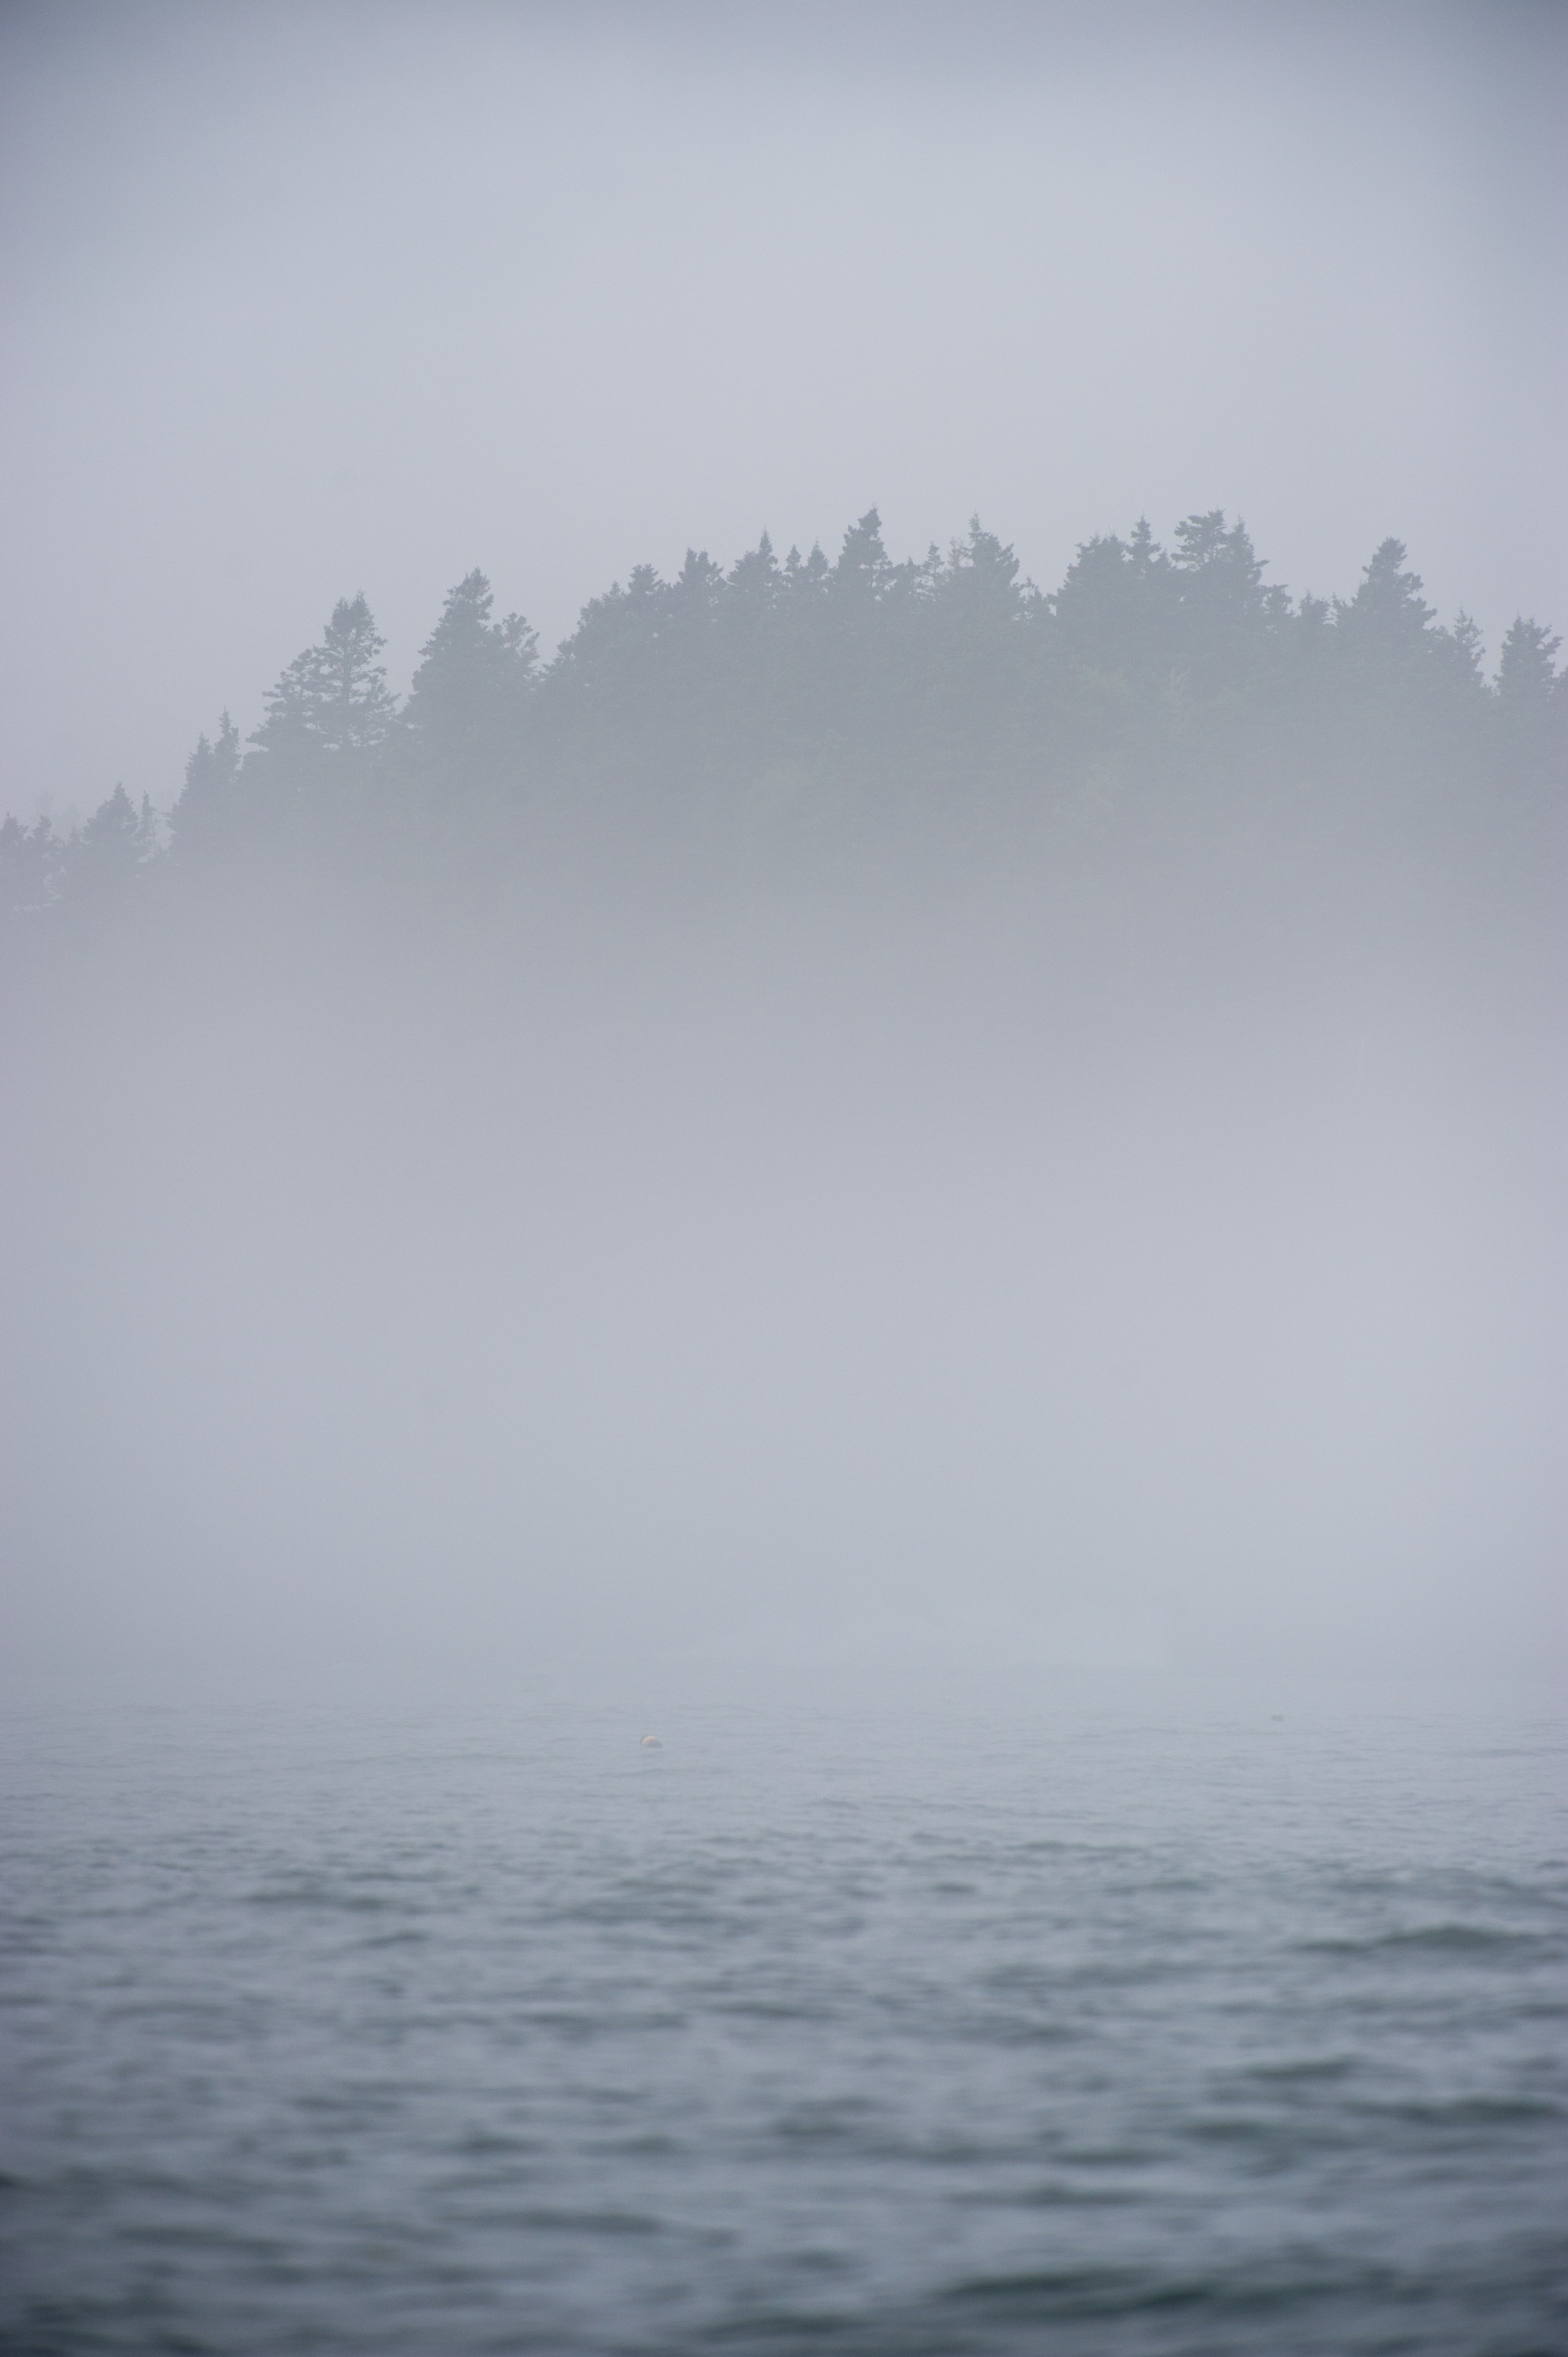 Silhouette of foggy forest on a misty morning by the lake